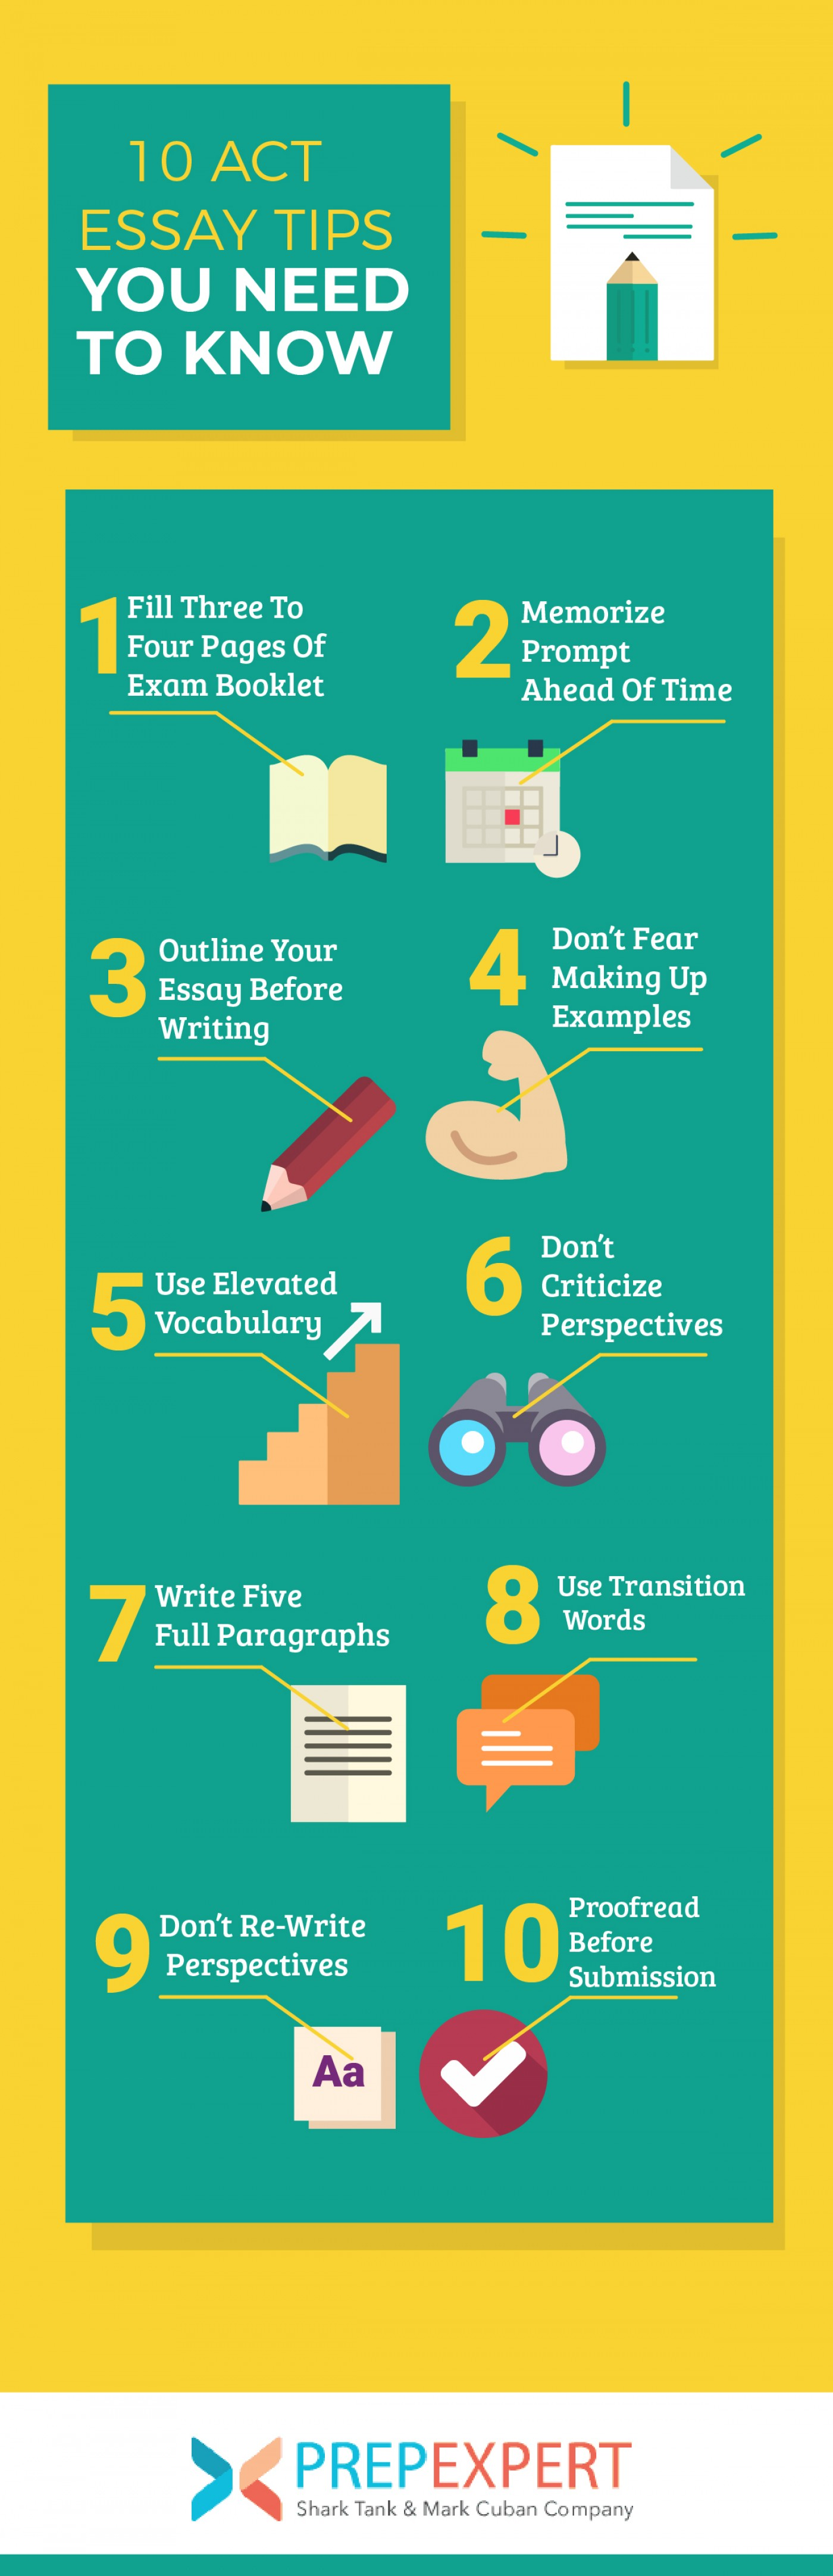 017 Essay Example Act 235585 Essayinfographics 052918 Fearsome New Time Limit Rubric Tips 1400